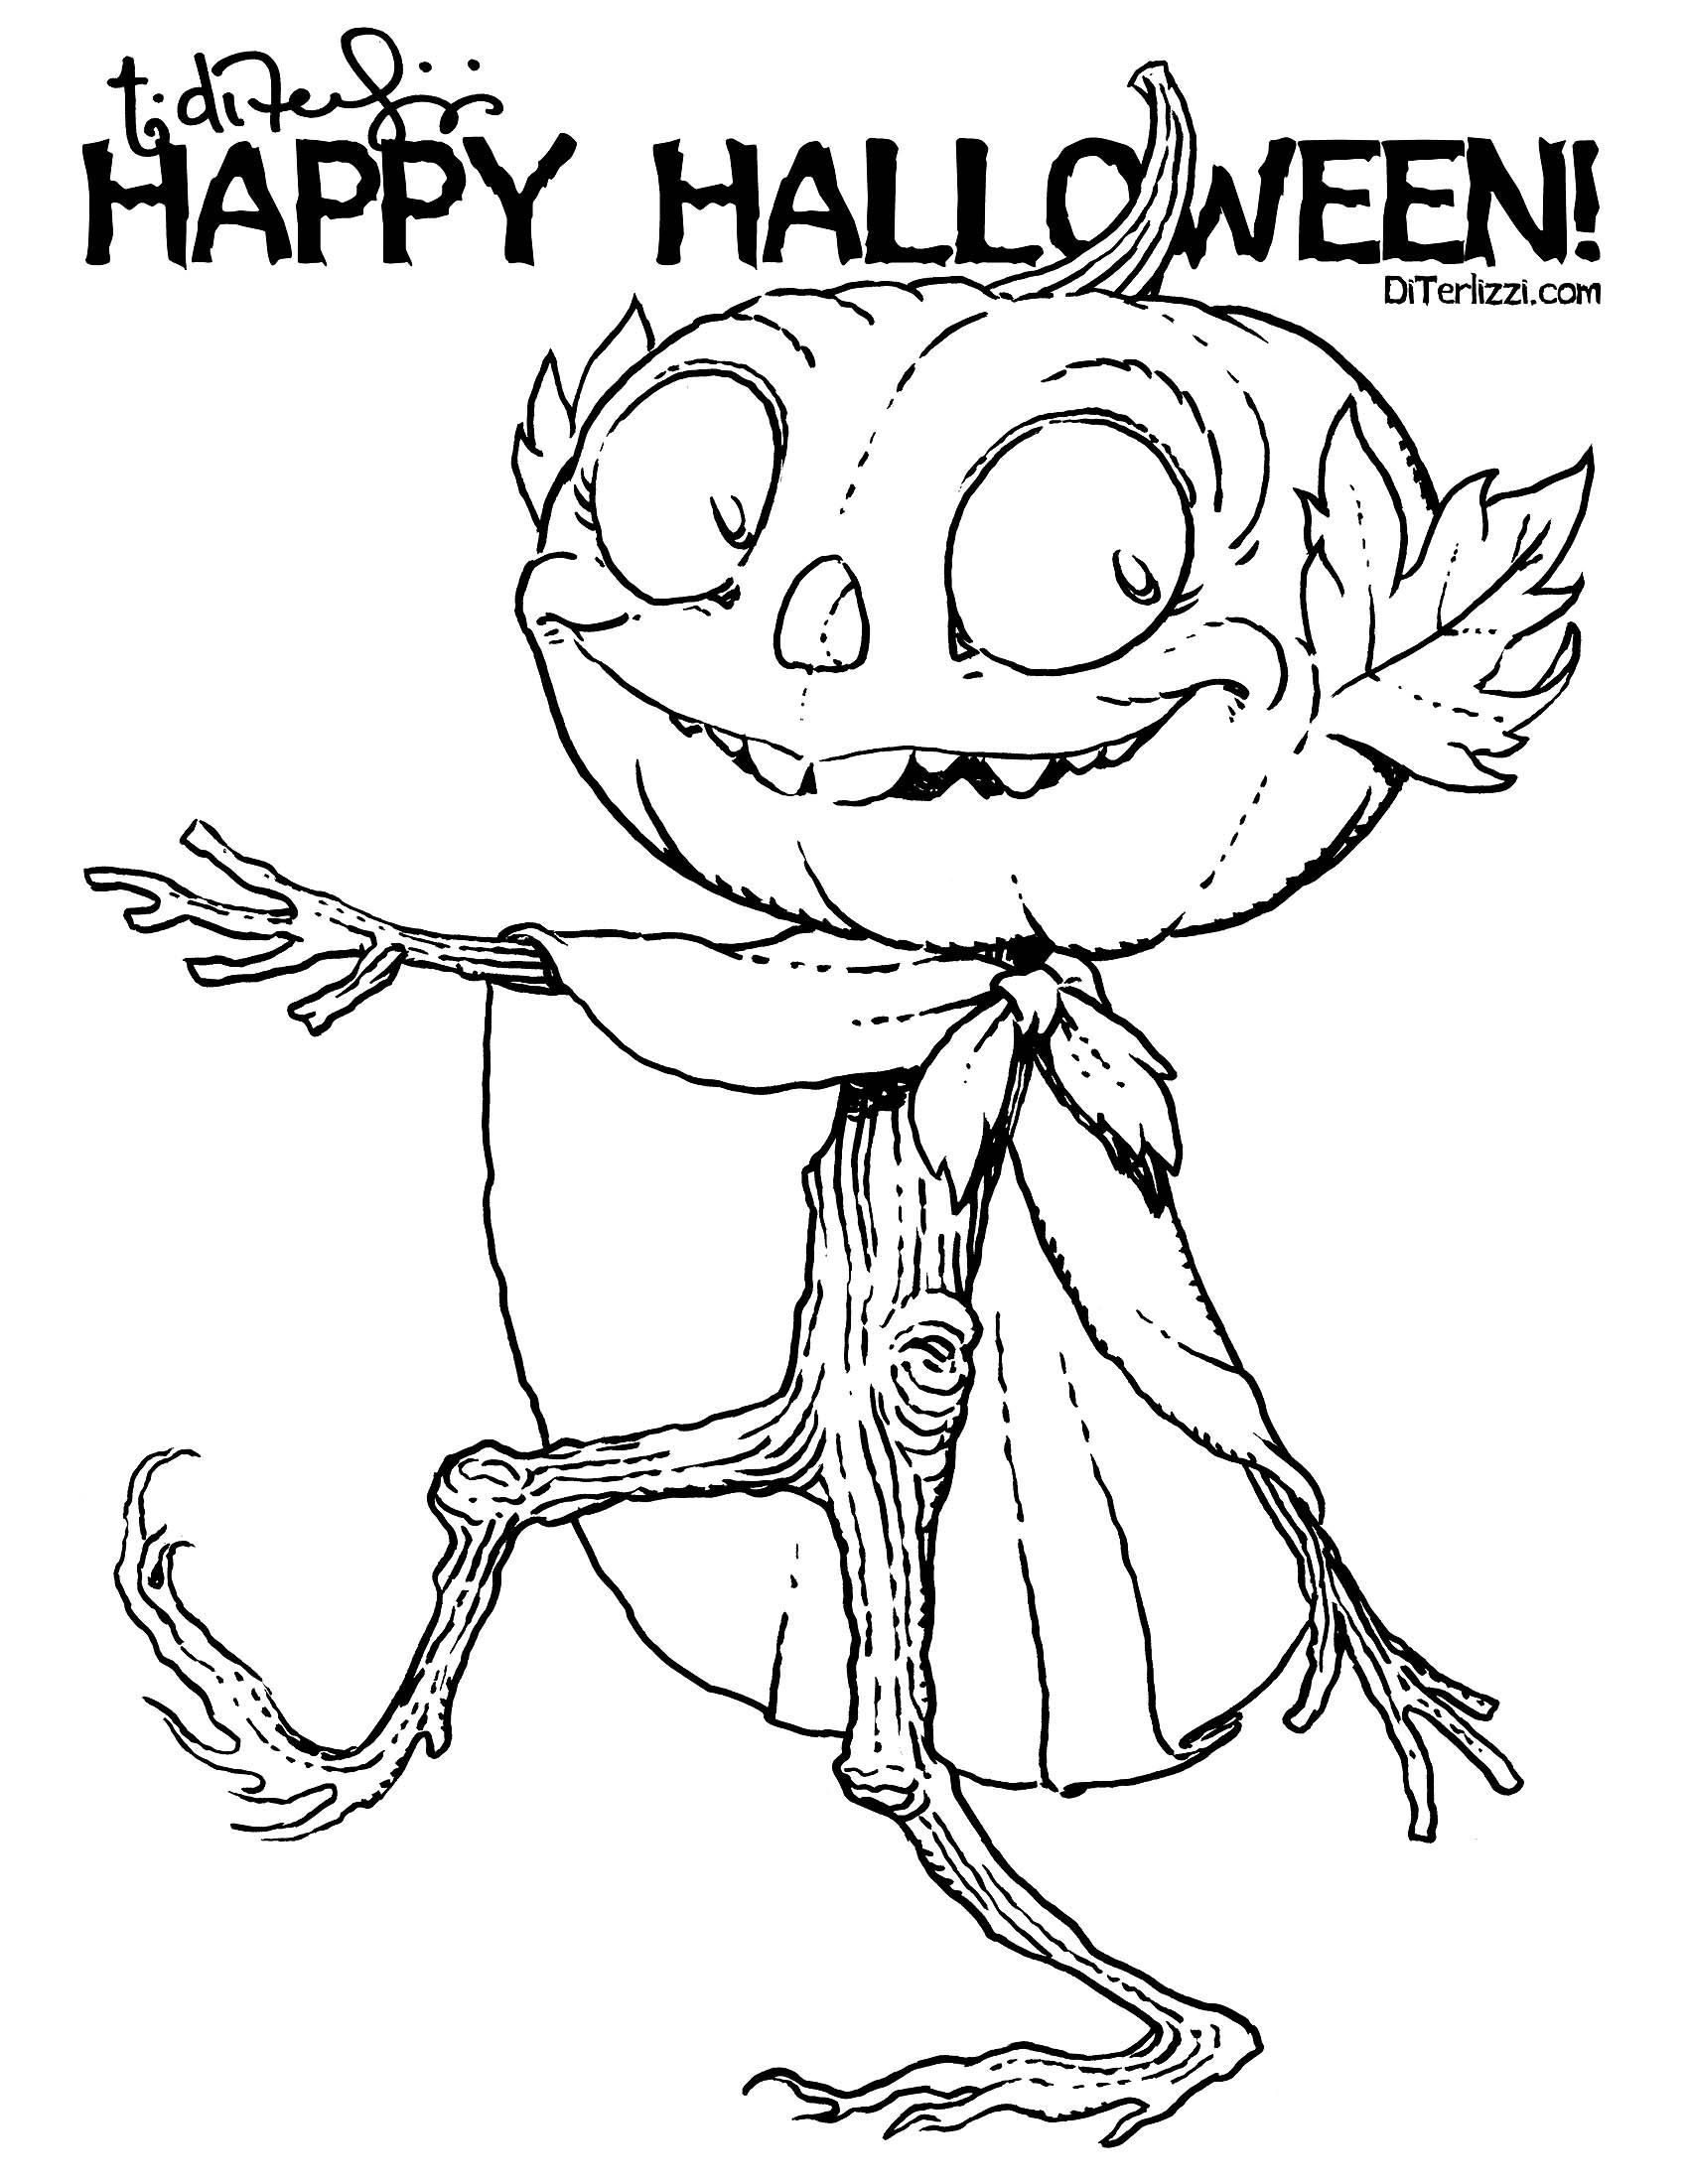 Jack O Lantern Parade Free Downloadable Printables From Tony Diterlizzi